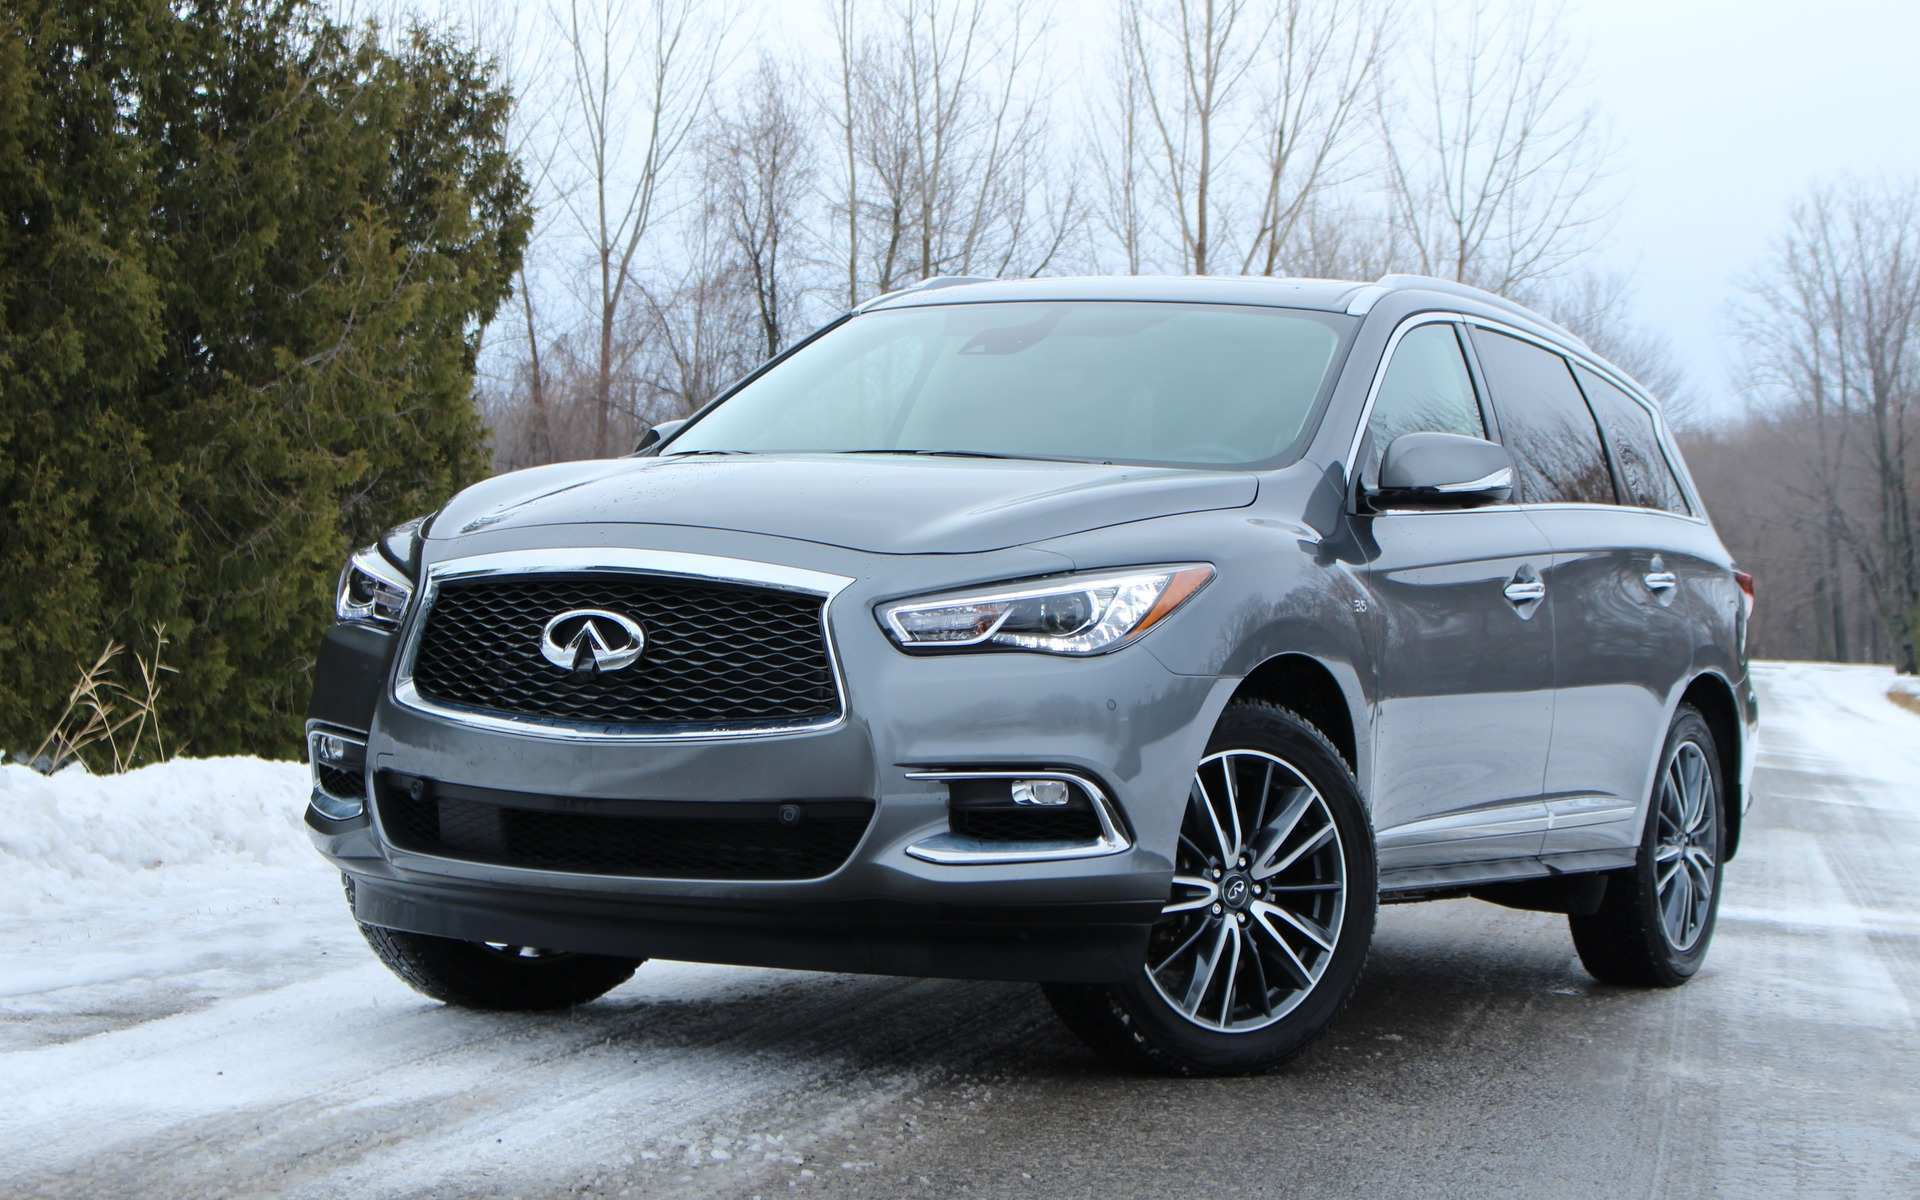 60 The Best 2019 Infiniti Qx60 New Review